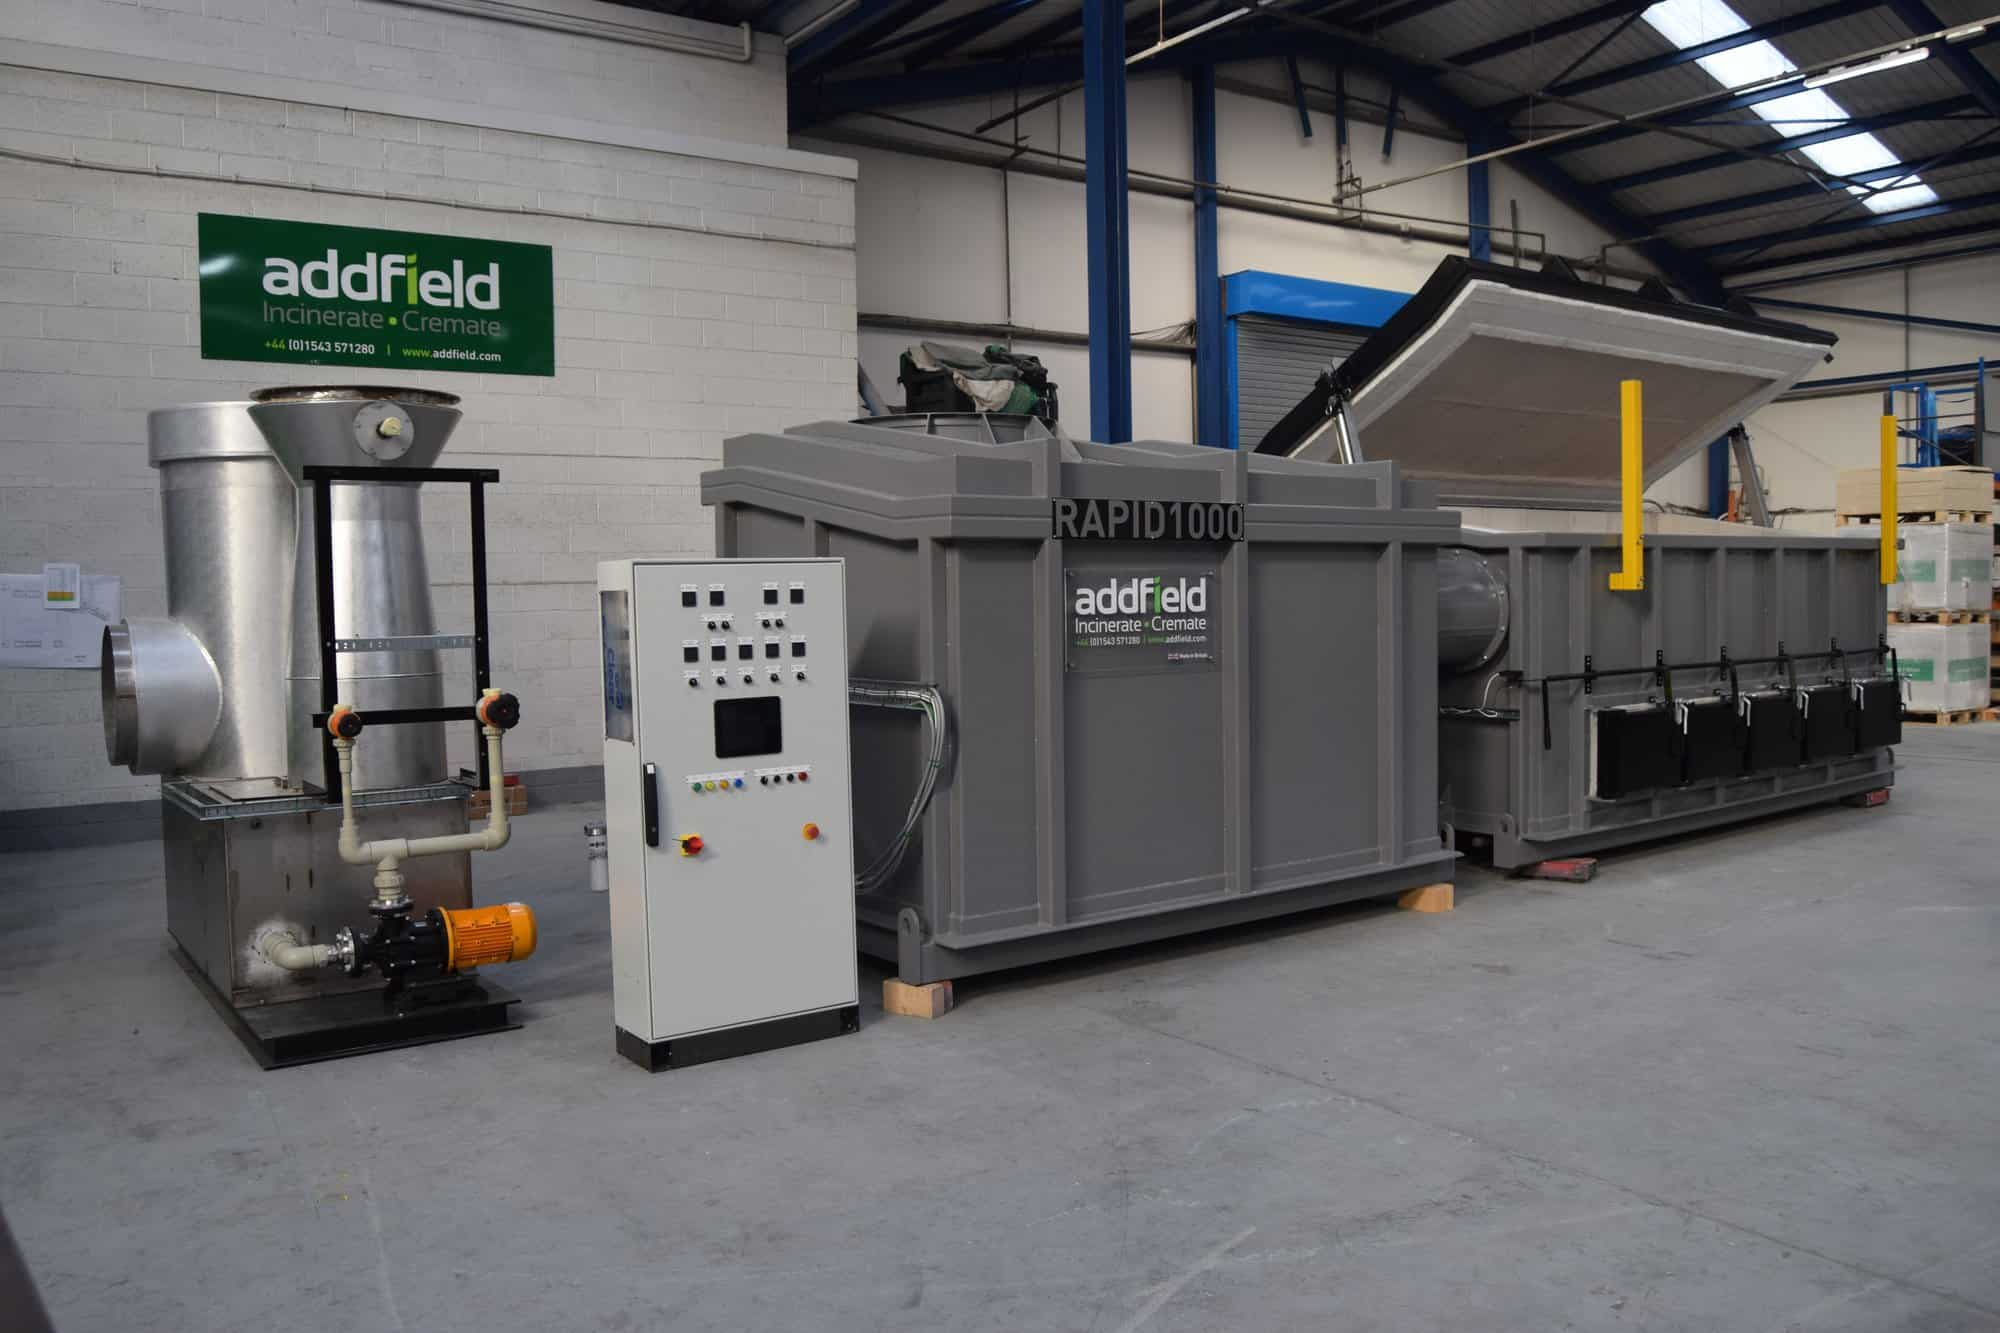 Discover the Rapid 1000 High Capacity Agricultural Incinerator